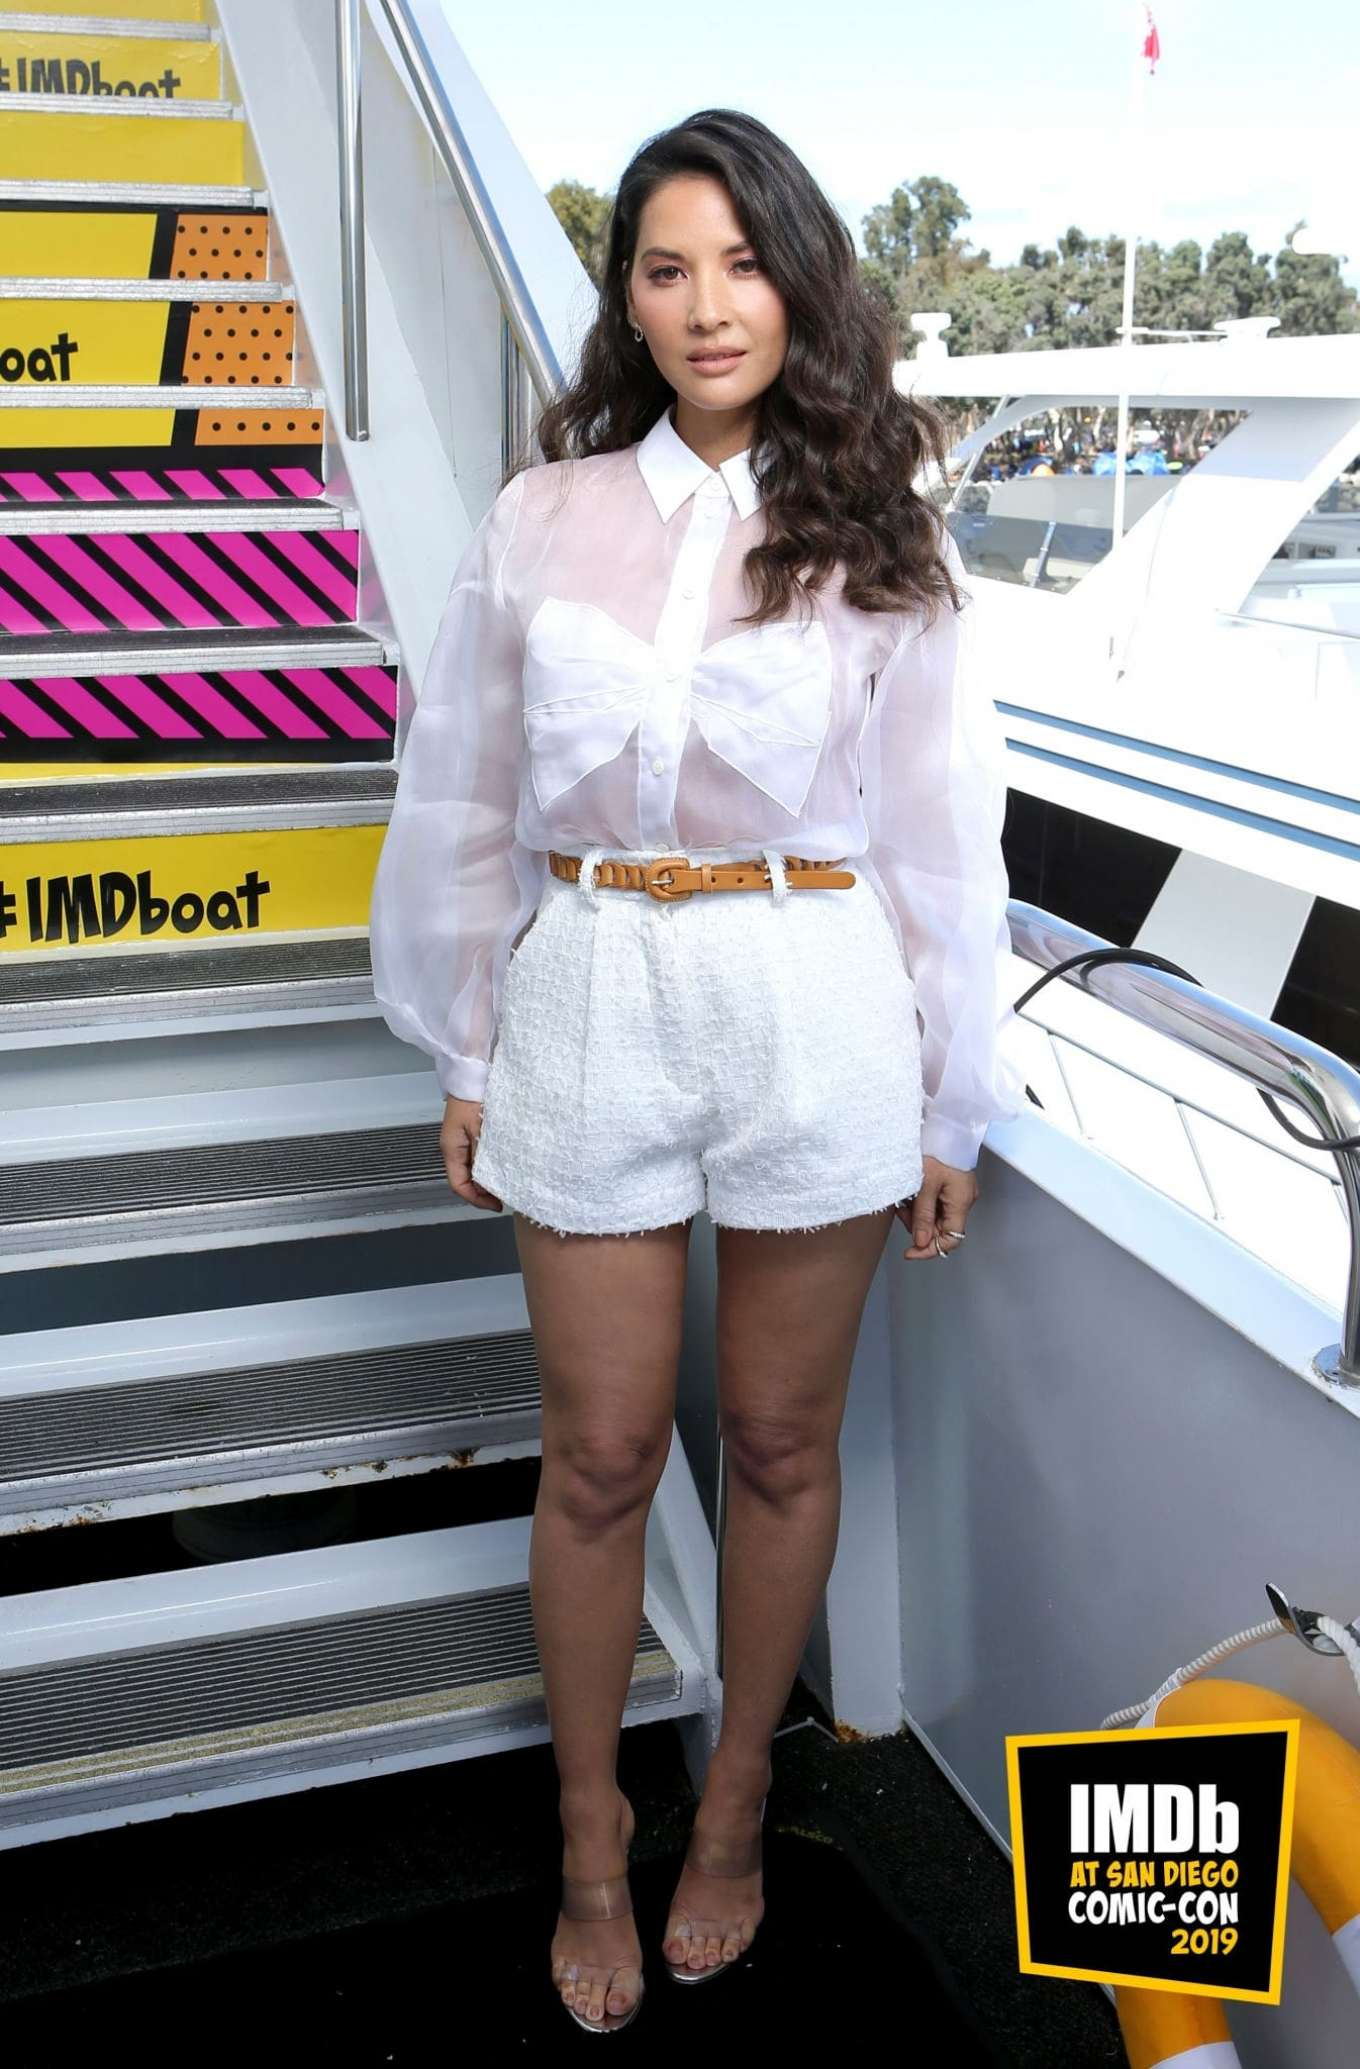 Olivia Munn - IMDBoat Celebrity Portraits at Comic Con San Diego 2019